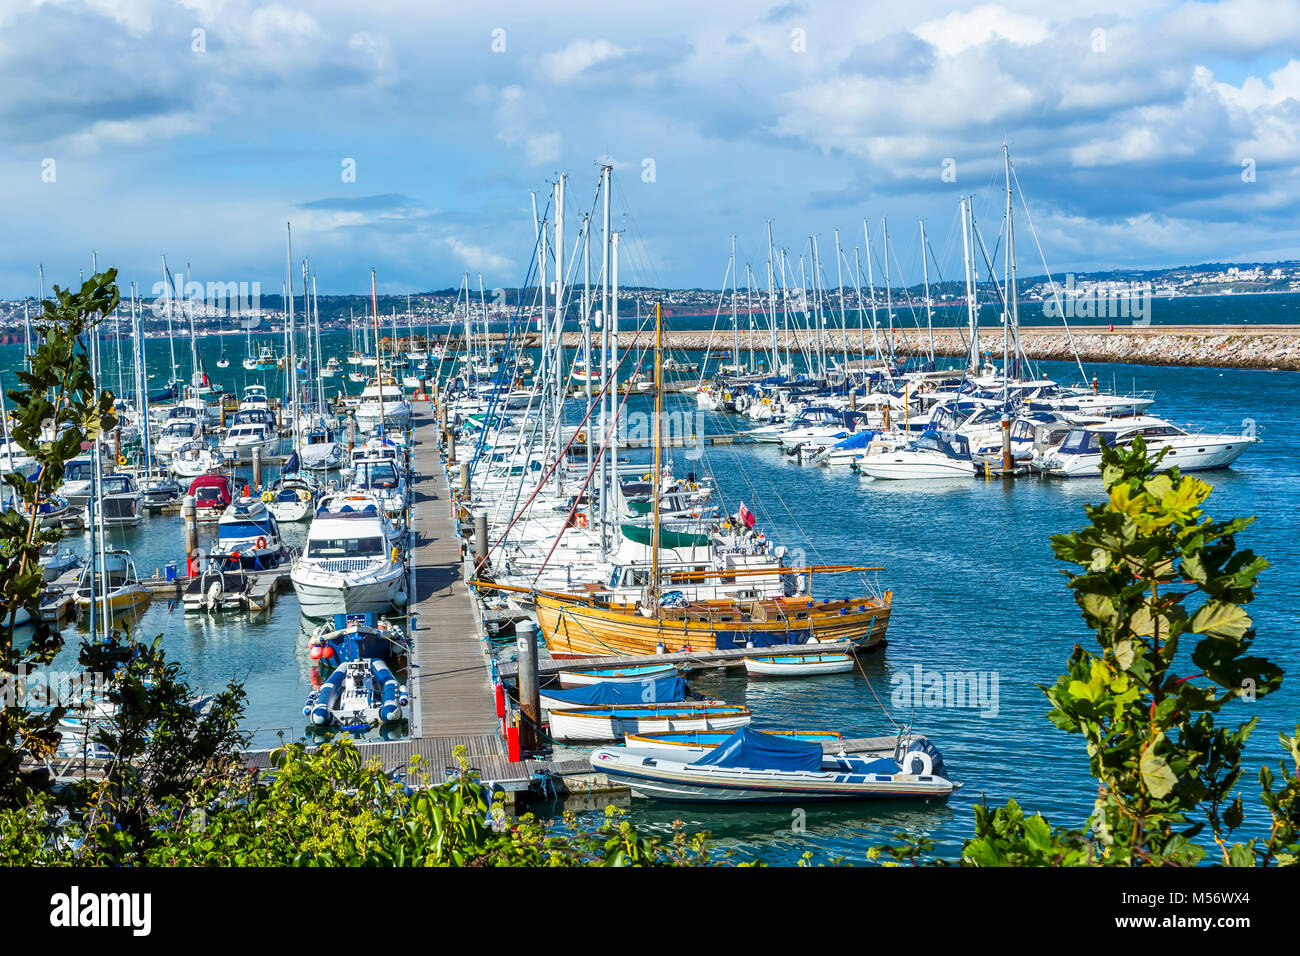 Yachts in harbour at Brixham, South Devon in the UK. - Stock Image